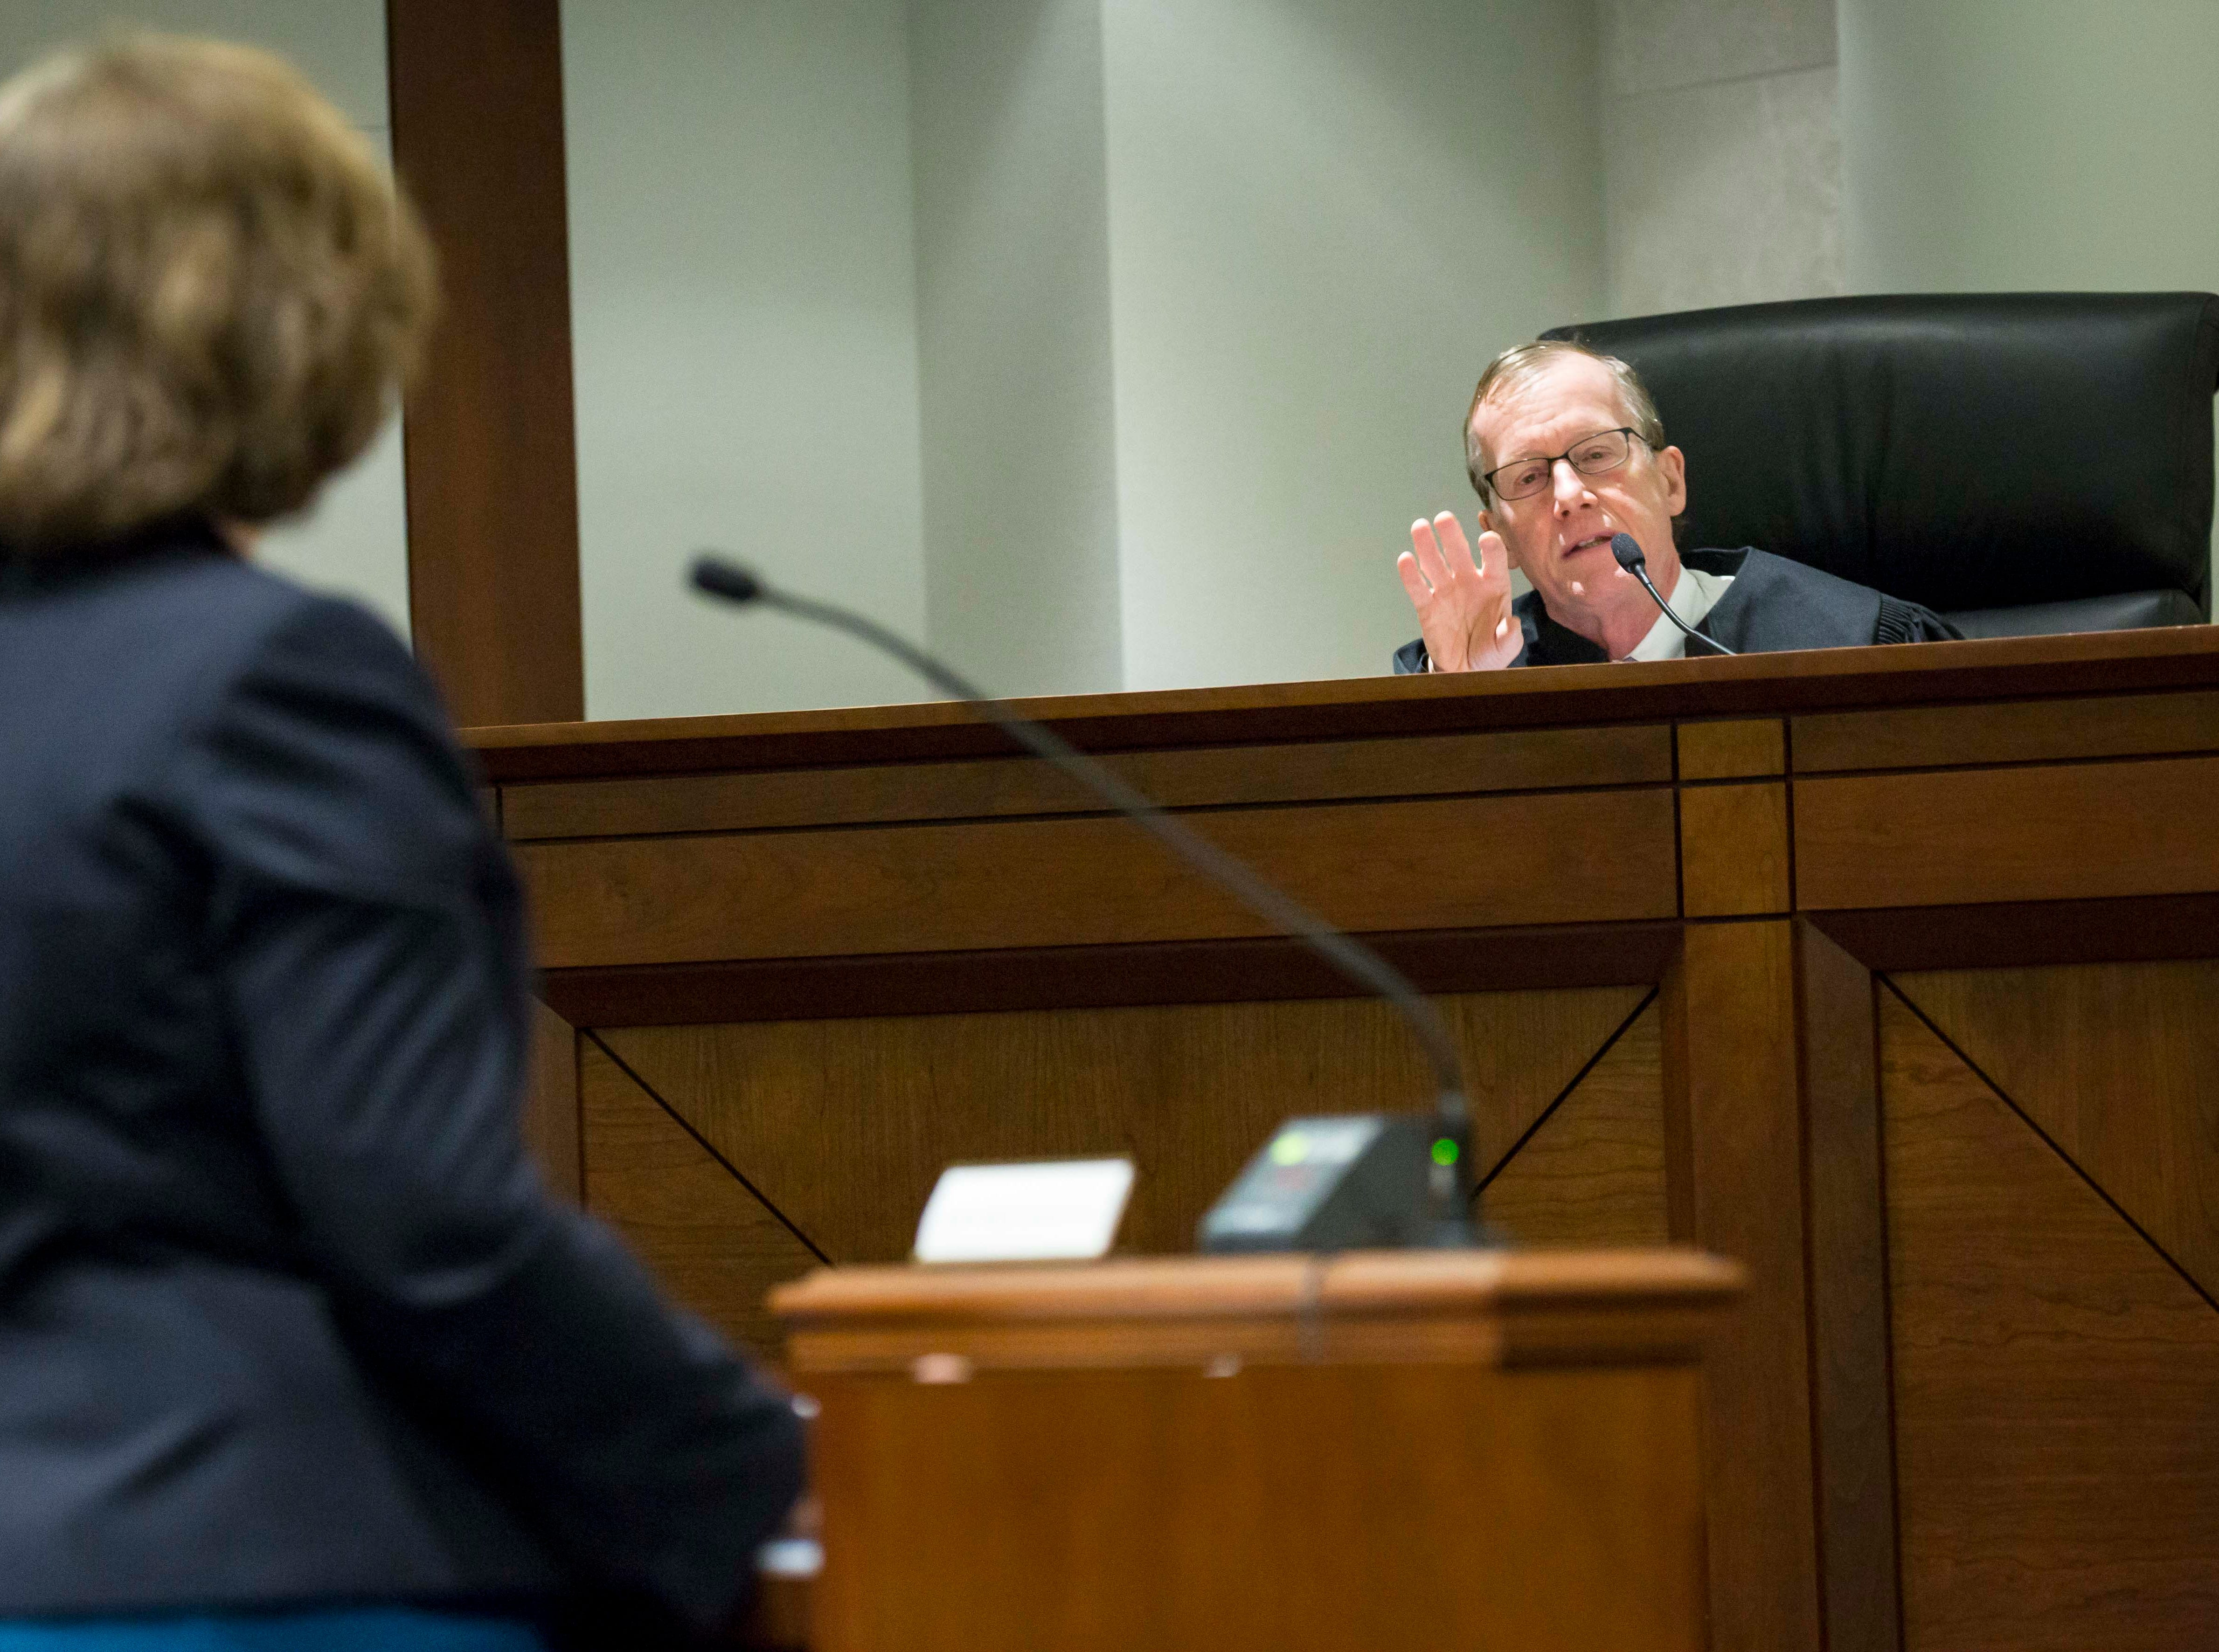 Justice Edward M. Mansfield talks to attorneys at the Iowa Supreme Court as they hear arguments in two challenges to Iowa's collective bargaining law change last year. The challenges are from AFSCME and the Iowa State Education Association at the Judicial Building Wednesday, Dec. 12, 2018, in Des Moines, Iowa.